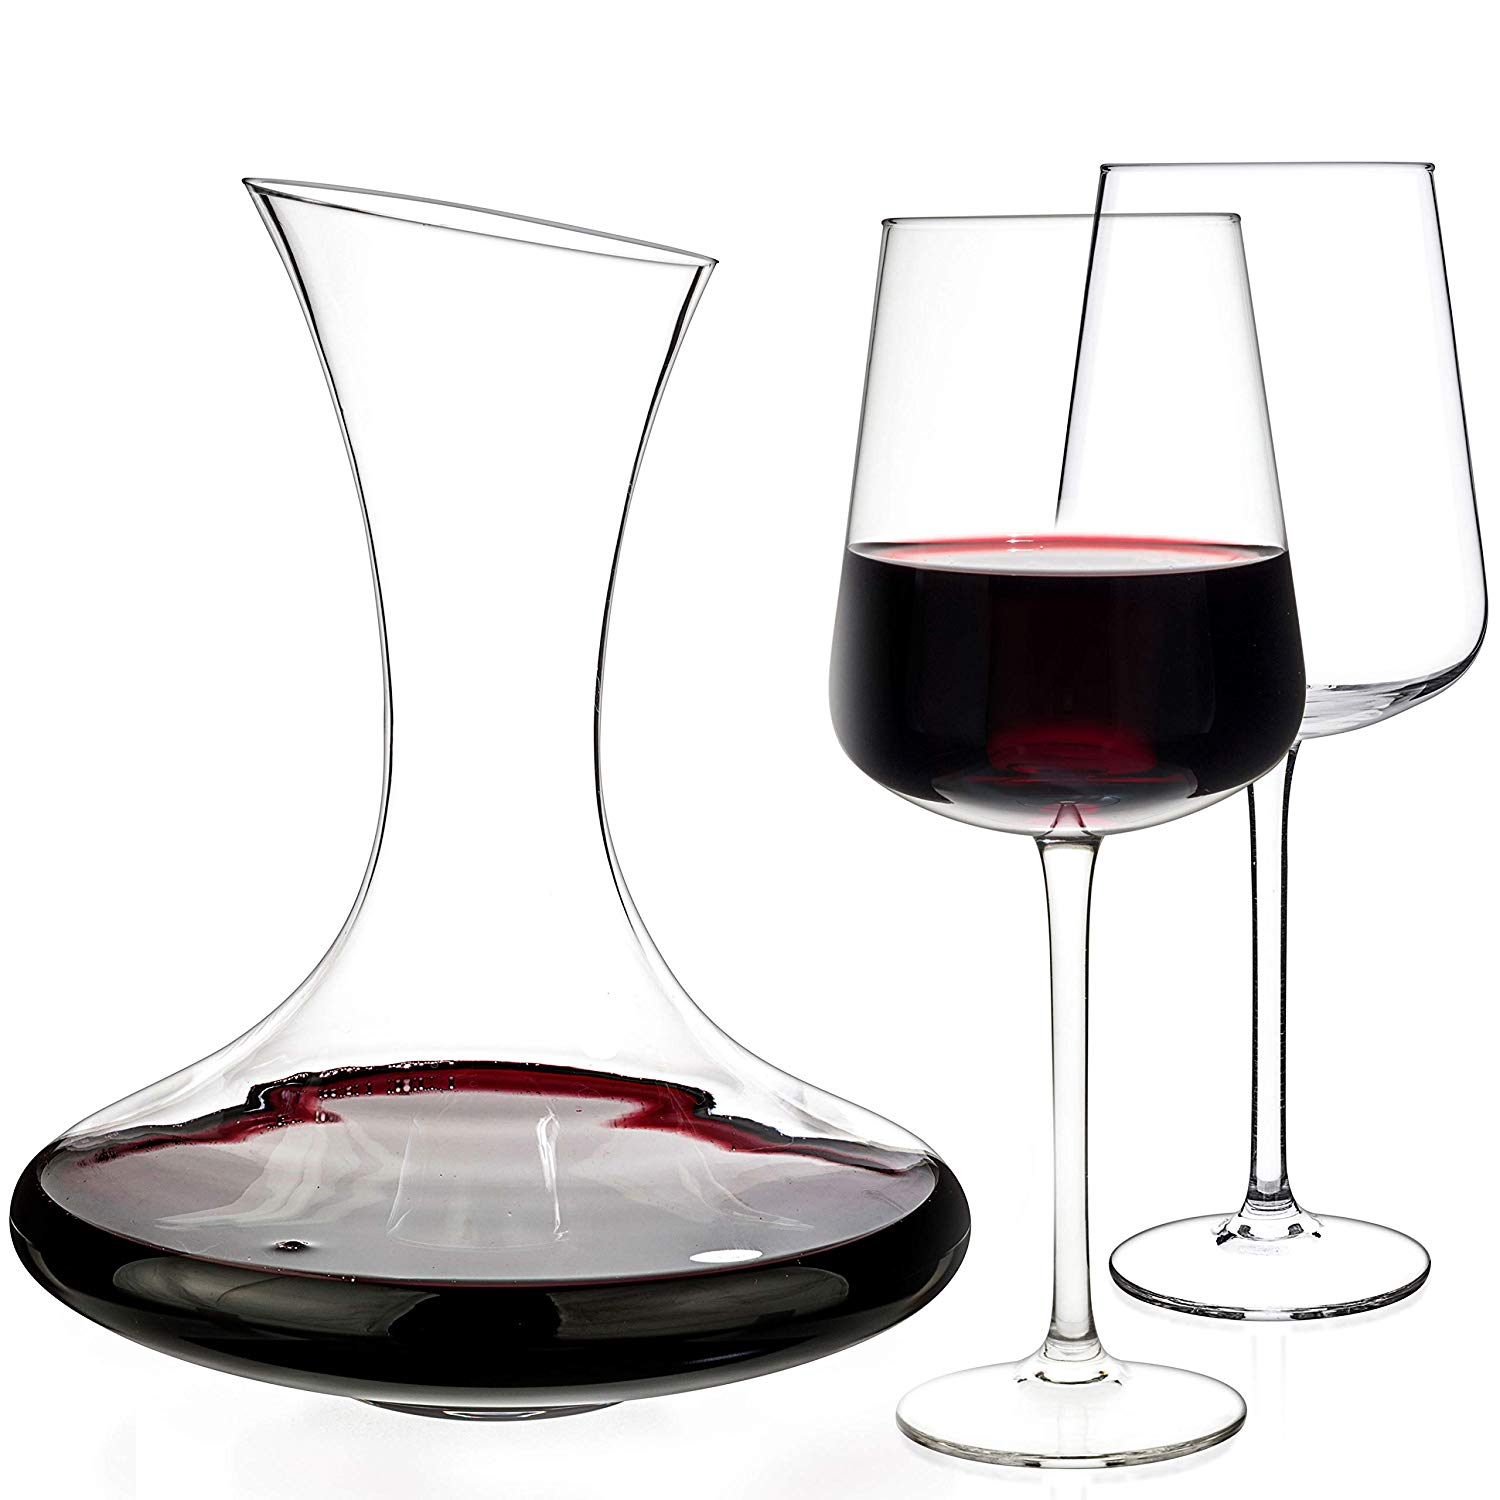 Luxbe - Wine Decanter 54-ounce + Set of 2 Wine Crystal Glasses - 100% Hand Blown Lead-free - Sturdy Red Wine Carafe Pitcher Aerator Pourer